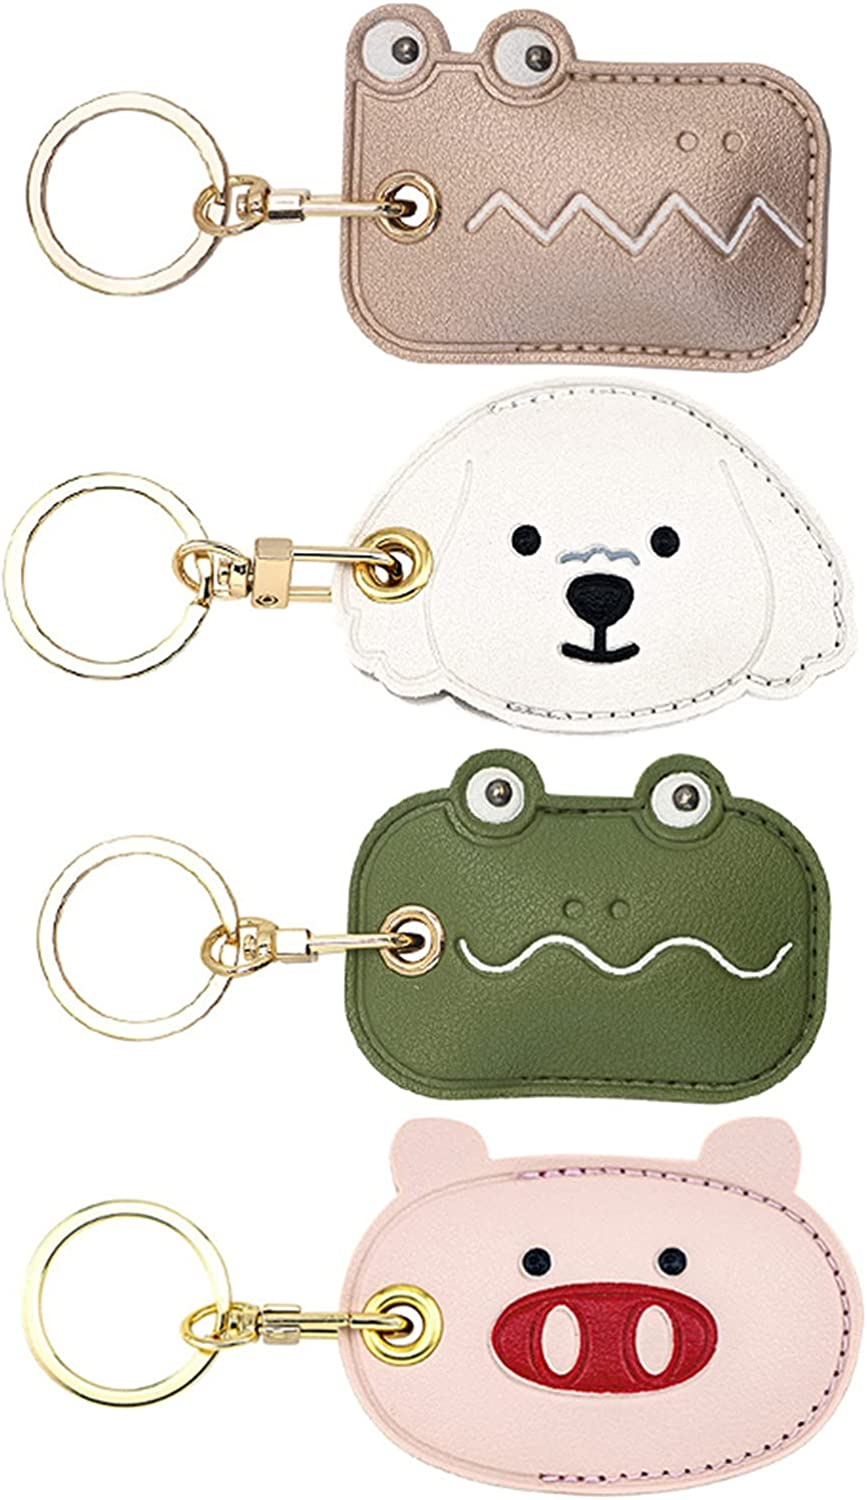 Cute Anti-Lost Case for AirTag,2021 New Protective Case Cover with Keychain Ring Designed,Safety Airtag Tracking Locator Anti-Lost Tracker Finder Protector (4PC A)